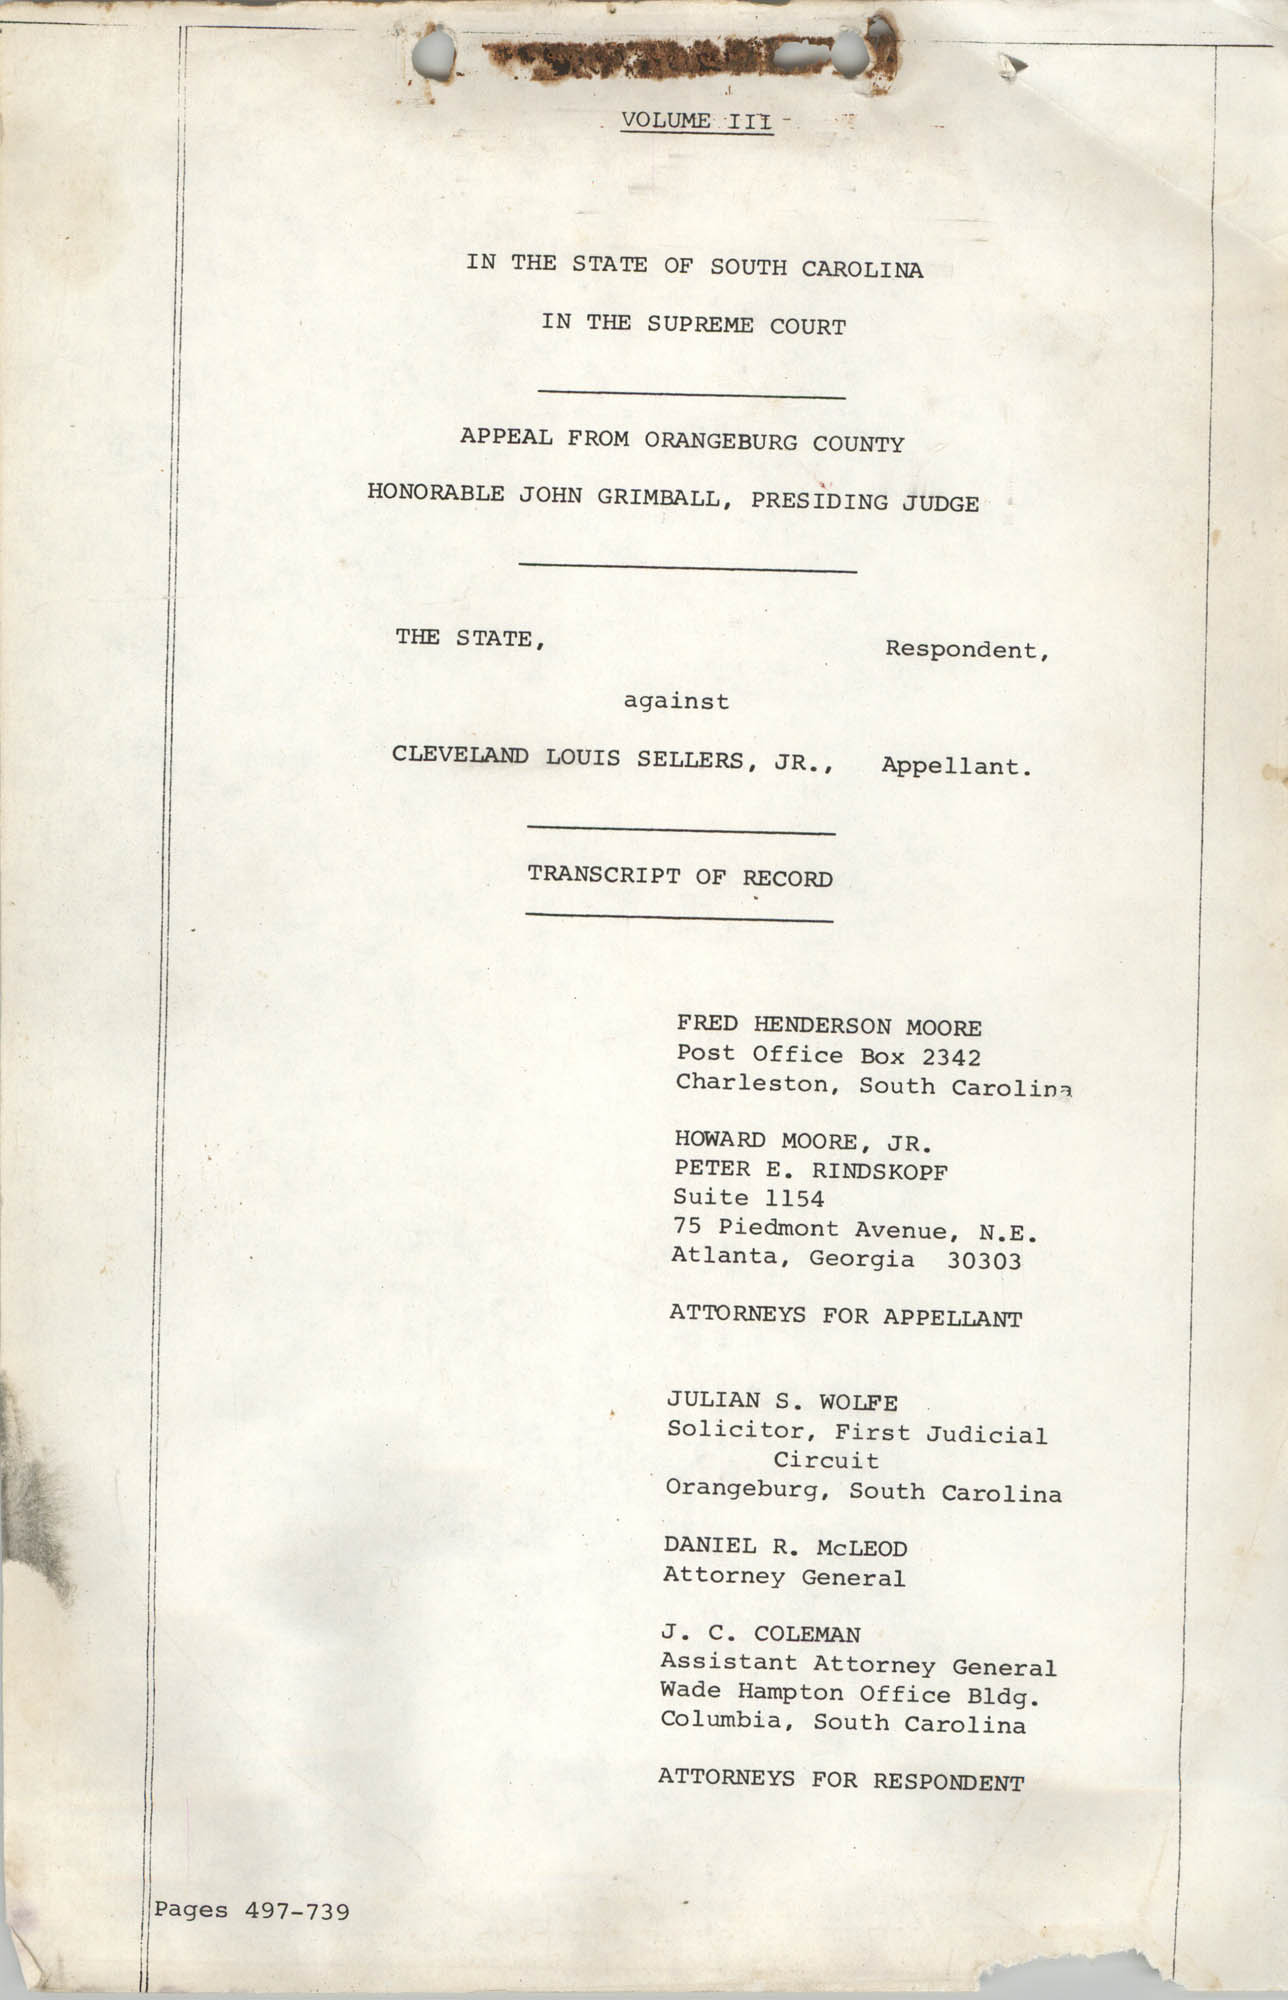 Appeal from Orangeburg County, The State against Cleveland Louis Sellers, Jr., Volume III, Cover